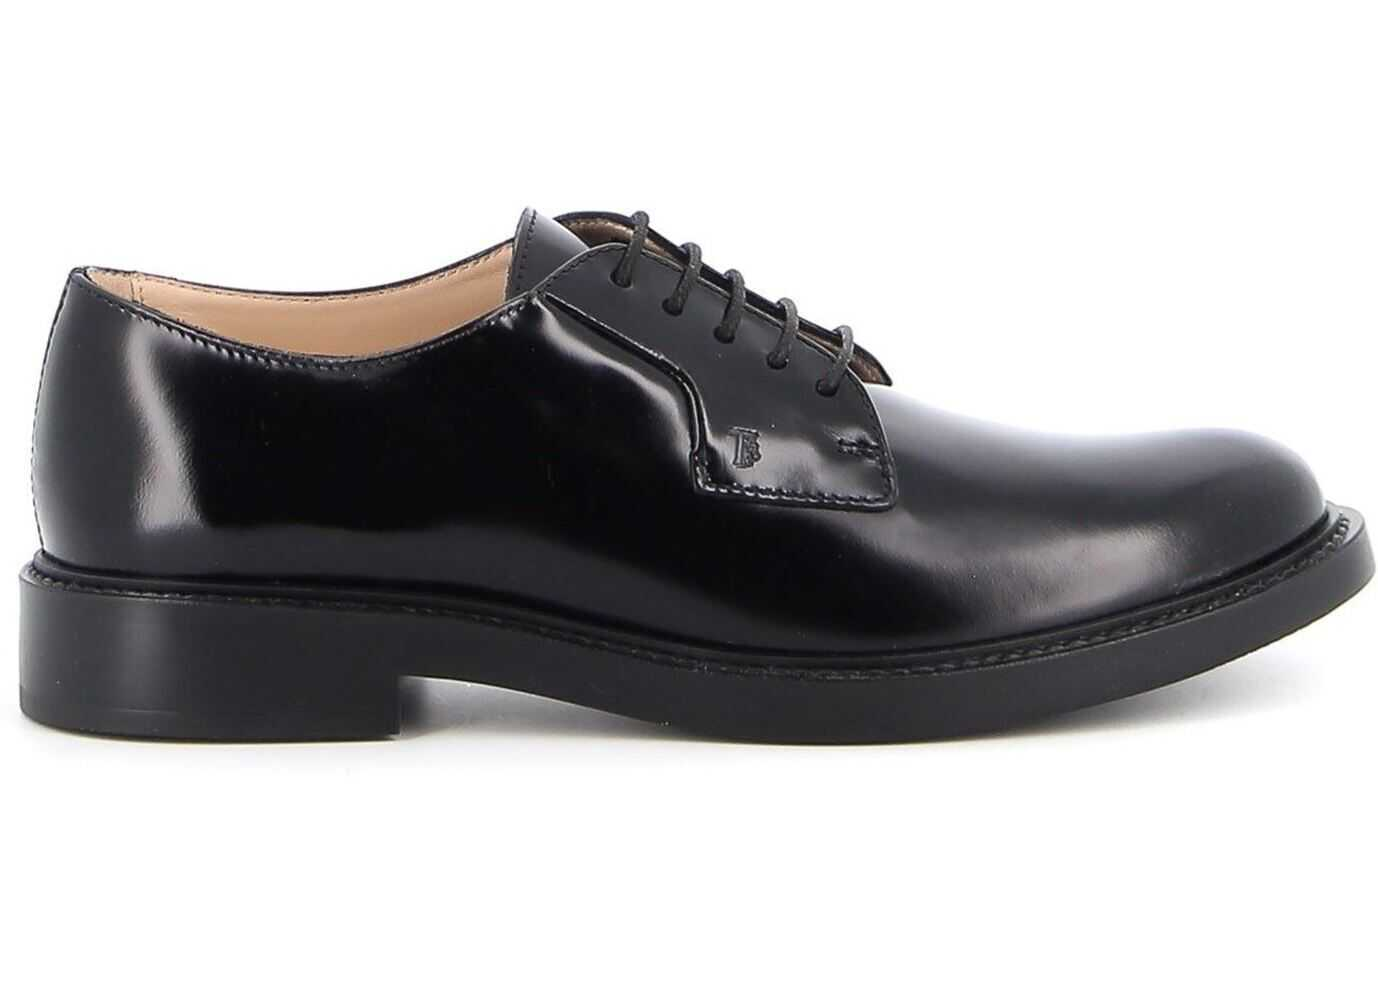 TOD'S Smooth Leather Lace-Up Shoes In Black XXW59C0DD20SHAB999 Black imagine b-mall.ro